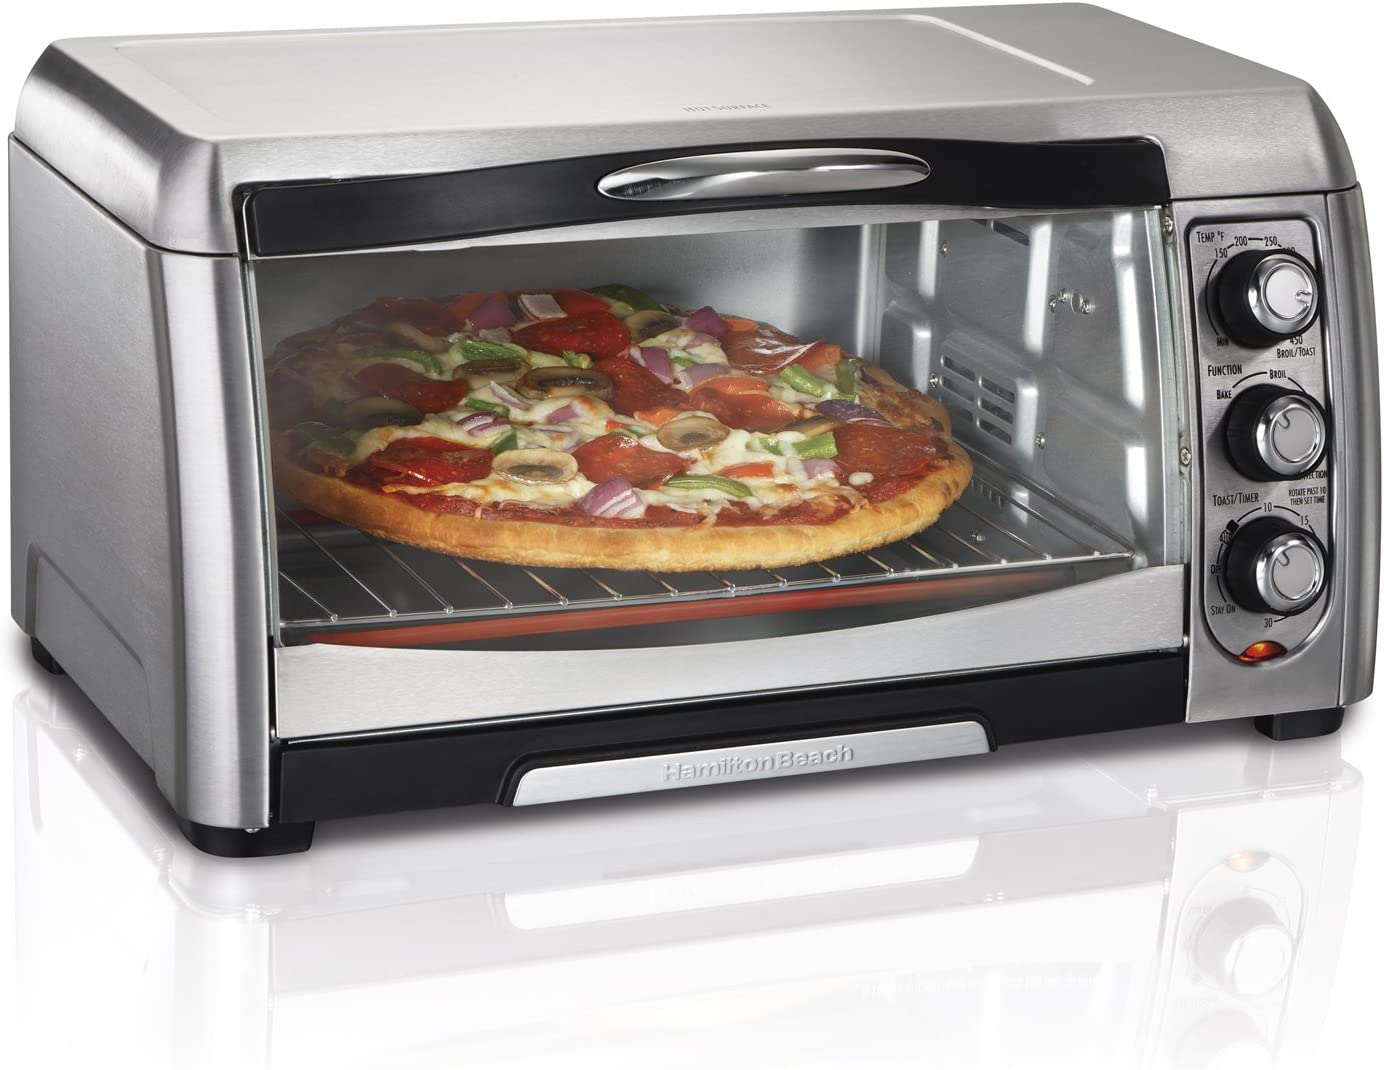 Top 9 Best Toaster Ovens (2020 Reviews & Buying Guide) 7